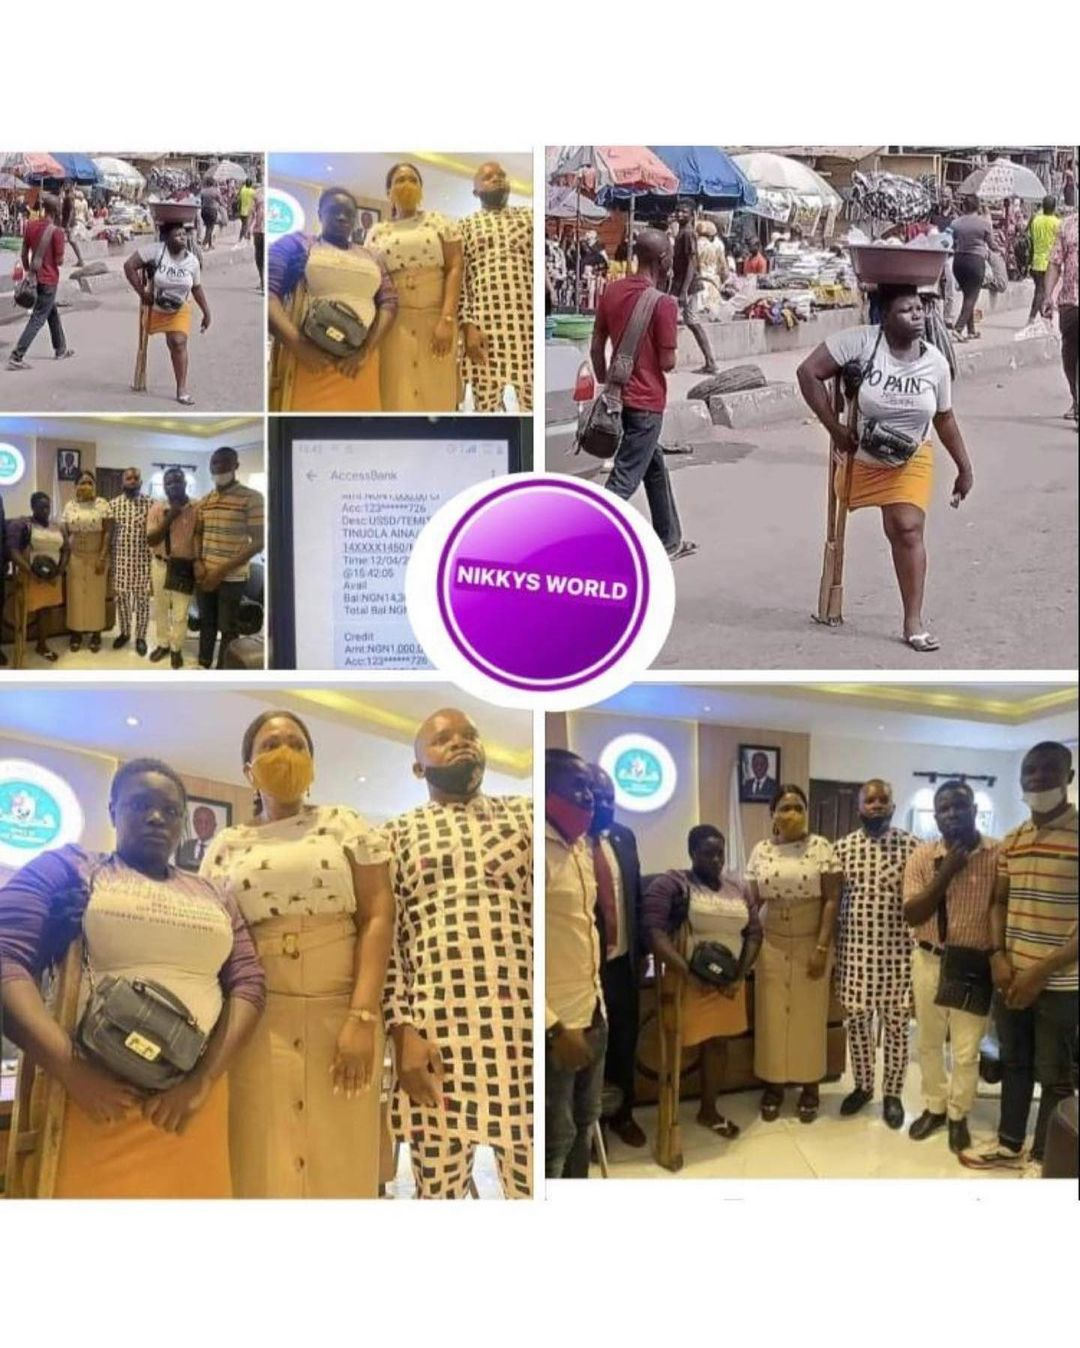 A man has proposed to a physically challenged young lady after she got N14 million from Nigerians.